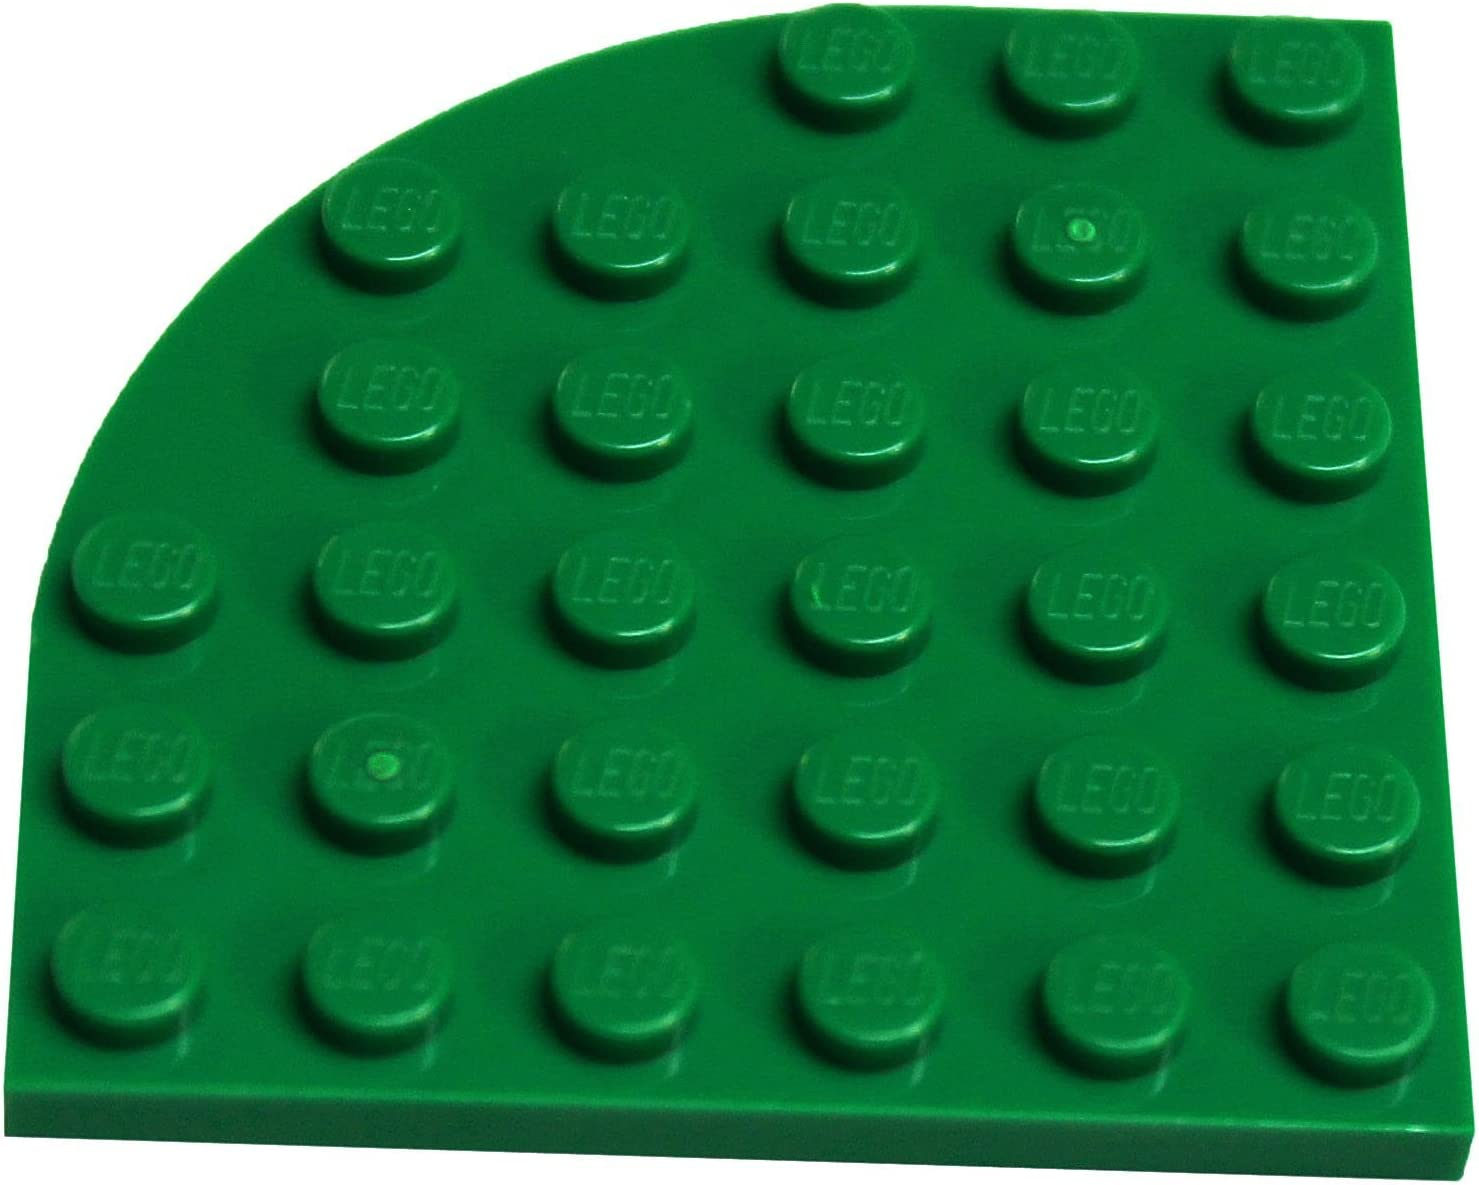 LEGO Parts and Pieces: Green 6x6 Round Corner Plates x20